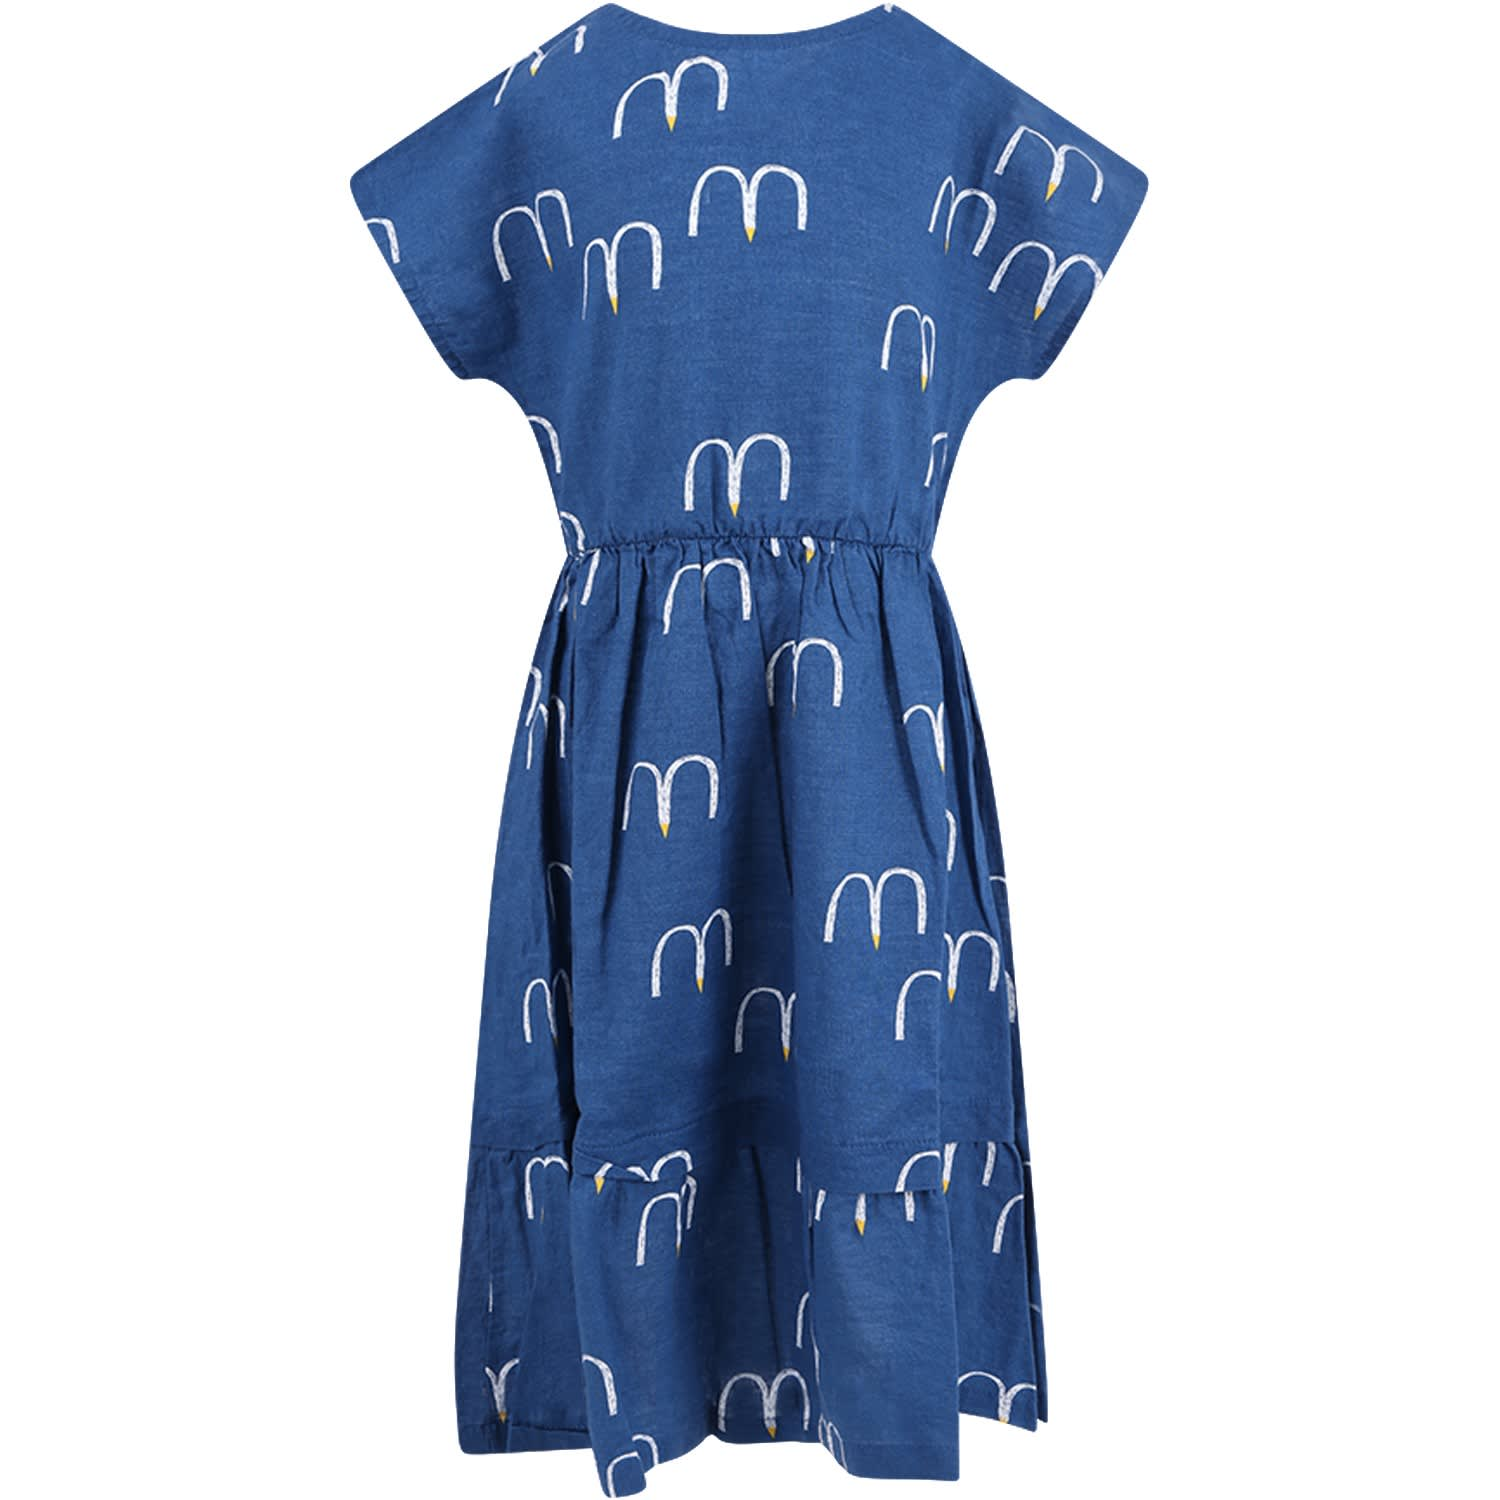 Bobo Choses Blue Girl Dress With Seagull